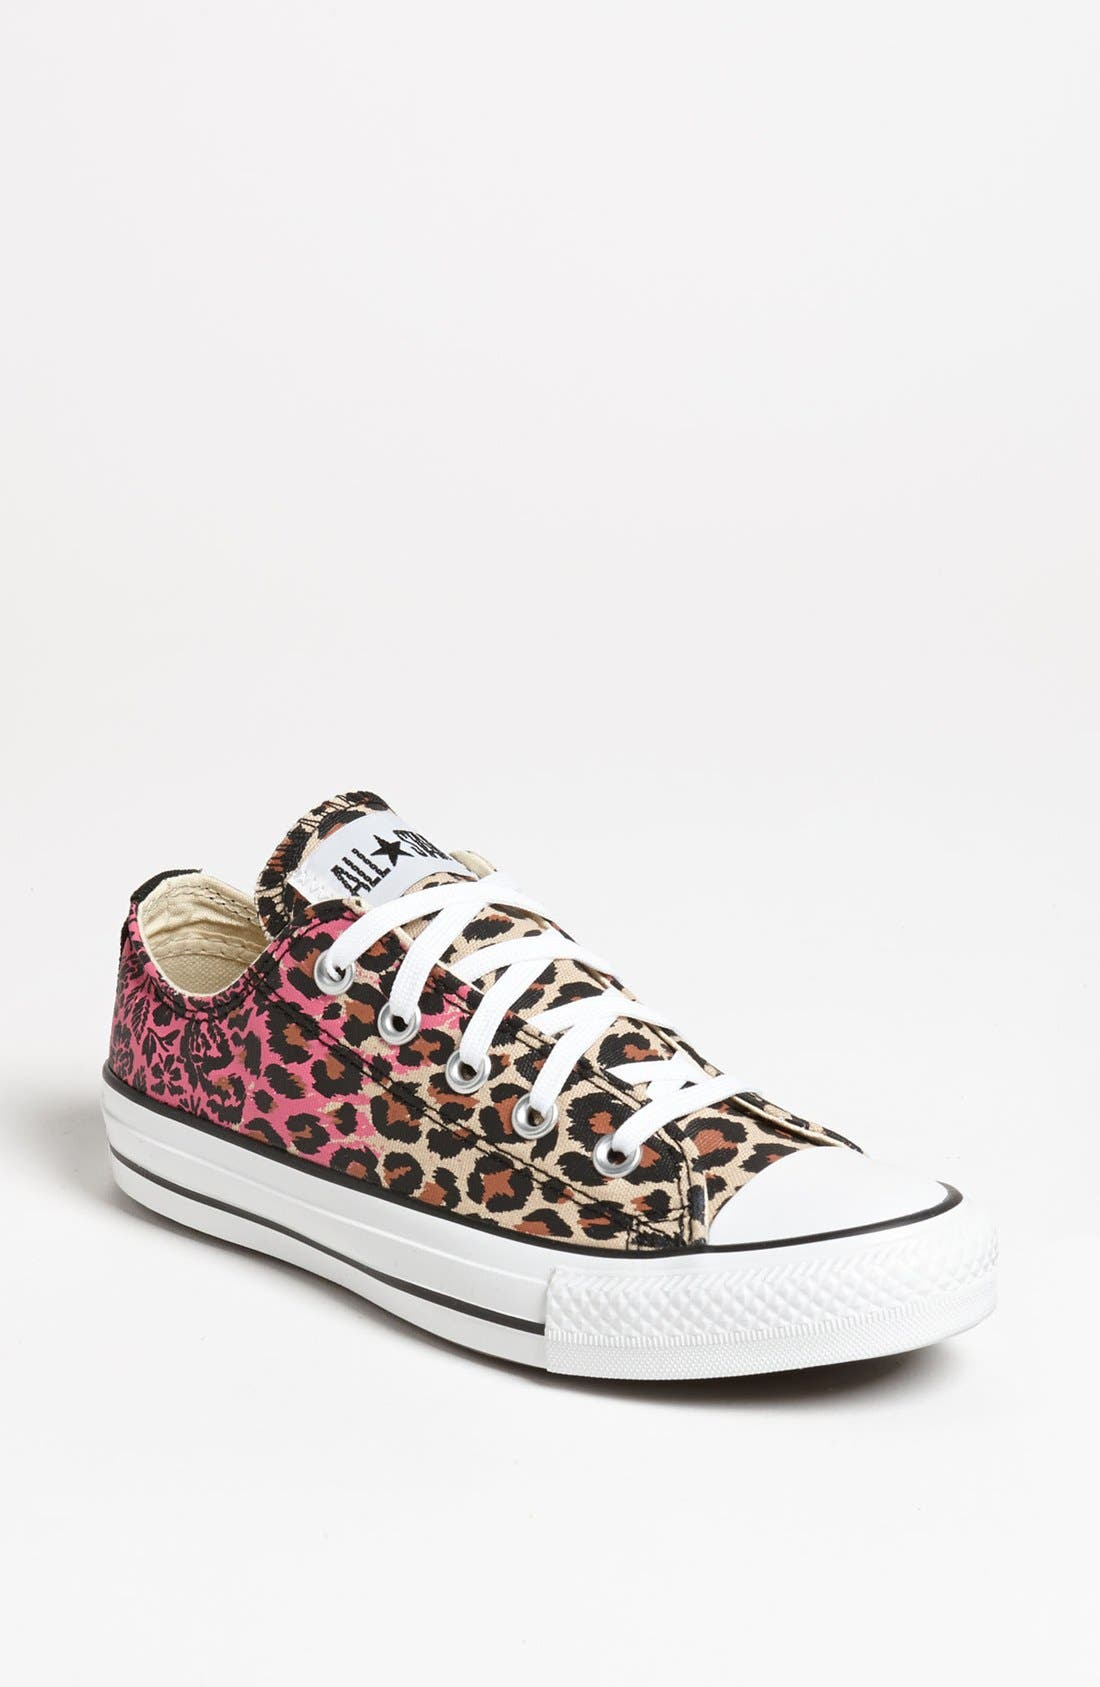 Alternate Image 1 Selected - Converse Chuck Taylor® All Star® Animal Print Sneaker (Women)